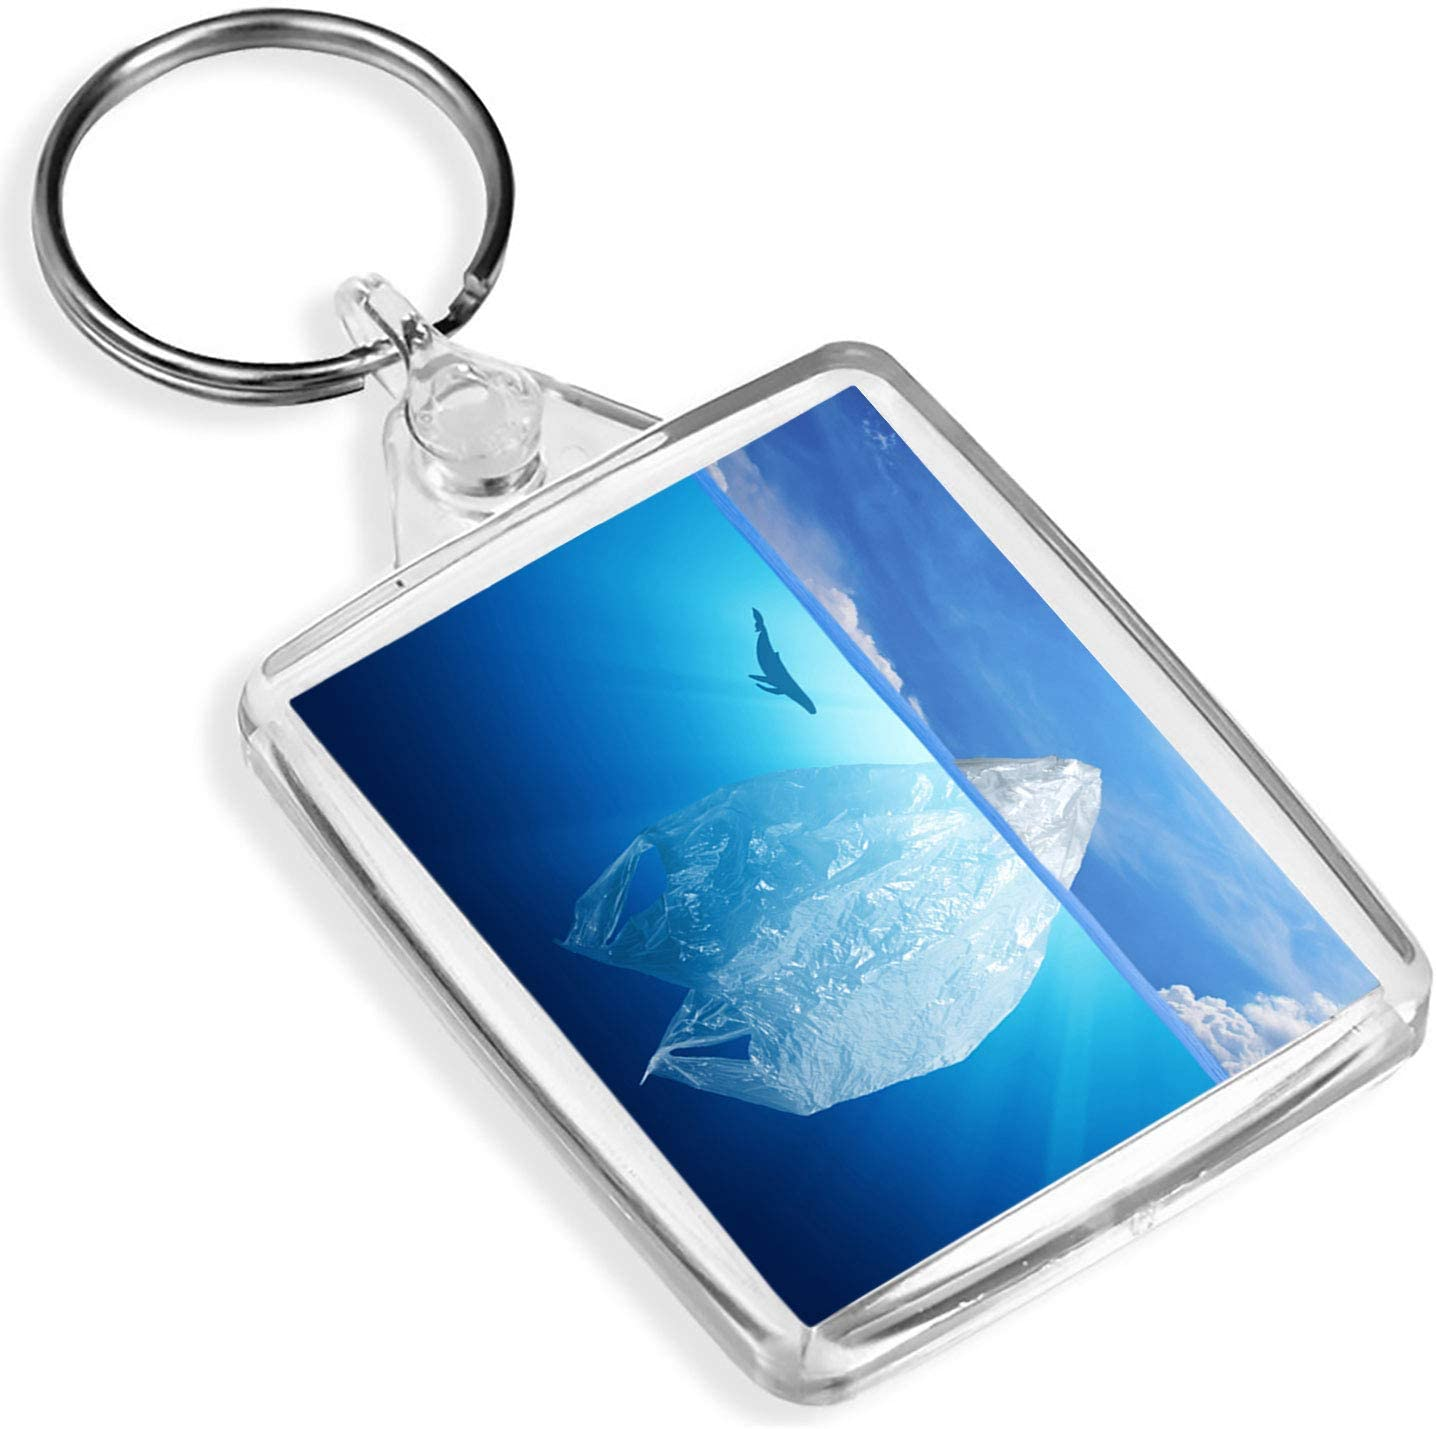 Destination Vinyl Keyrings 1 x Bolsa de plástico Iceberg Pollution Sea Save – Llavero – IP02 – Regalo para mamá papá niños # 3571